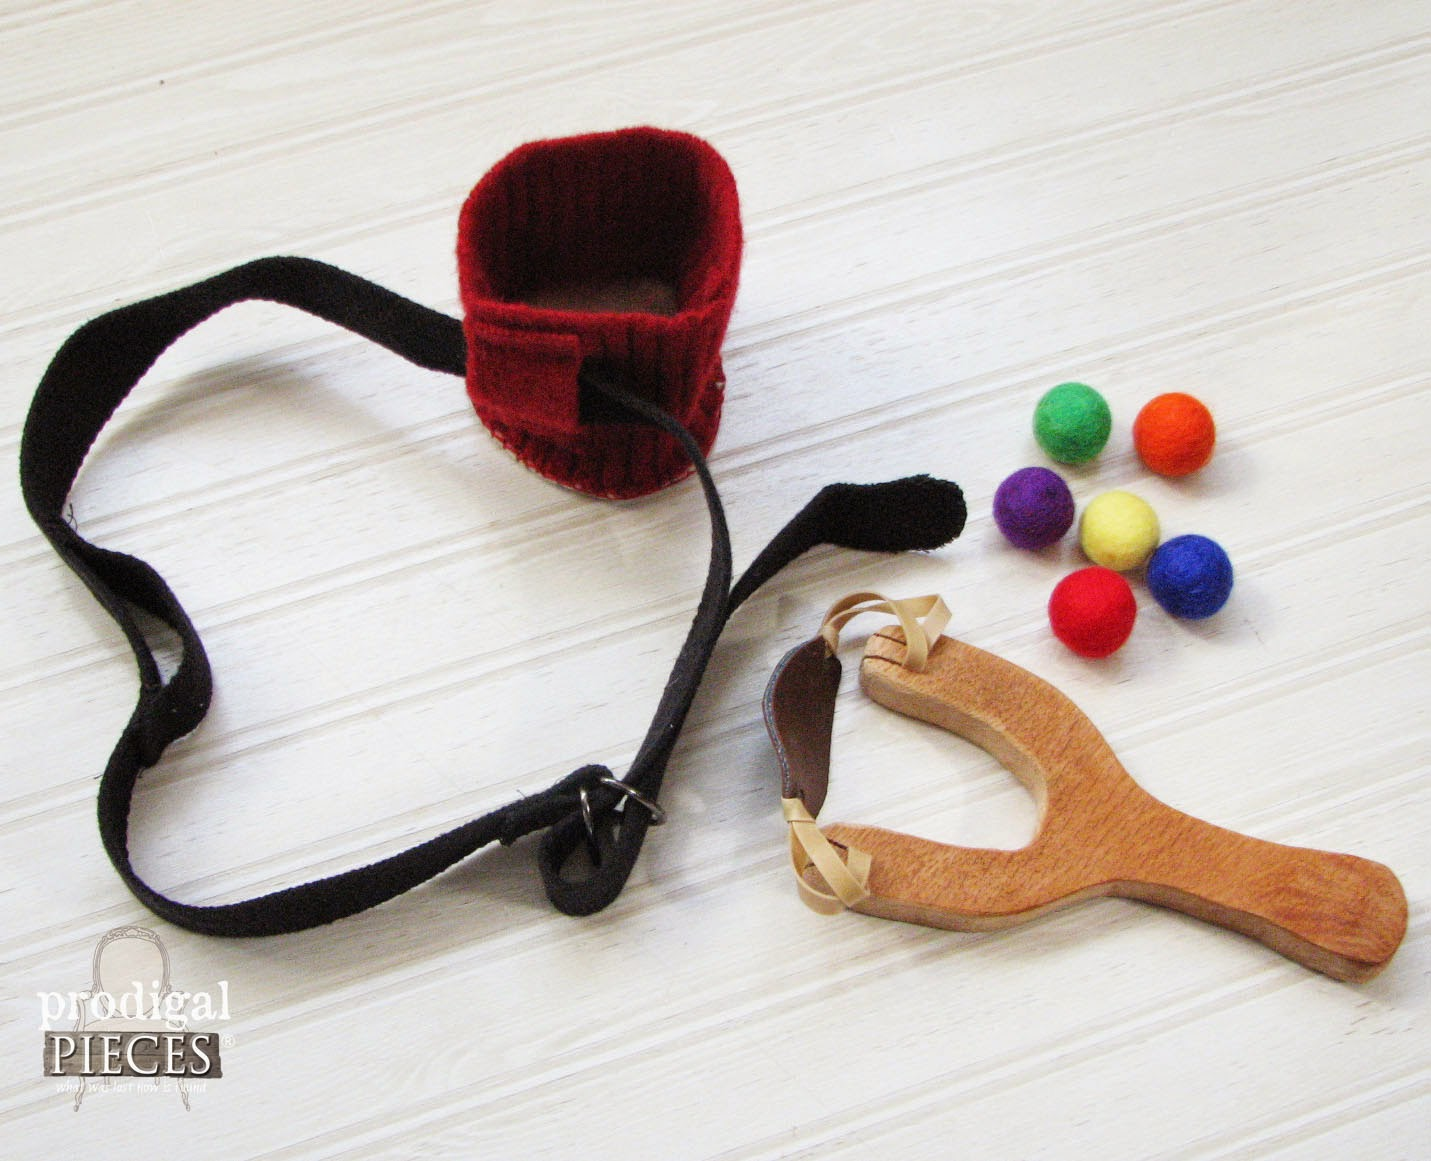 Handmade Holidays: Wool Felt Balls with Wooden Toy Slingshot Pretend Play Set by Prodigal Pieces www.prodigalpieces.com #prodigalpieces